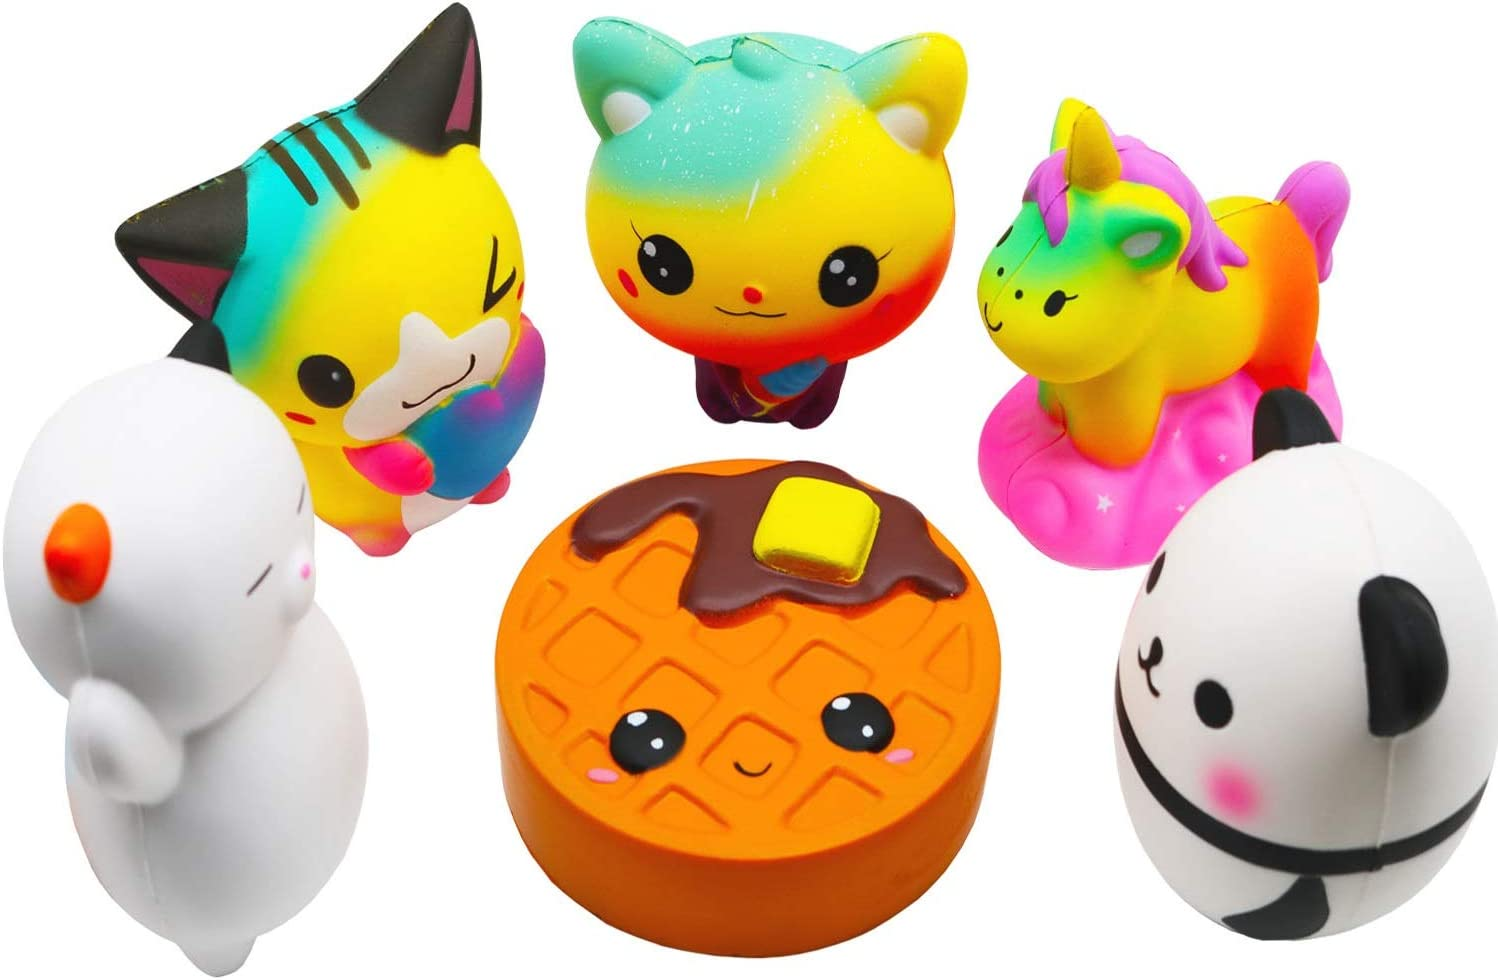 Korilave 6Pcs Jumbo Squishies Toy Set Cute Slow Rising Unicorn Cake Waffles Panda Cat Animal Squishy Toys for Kids Party Favors,Christmas Stocking Stuffers,Birthday Gift,Adults Office Stress Relief